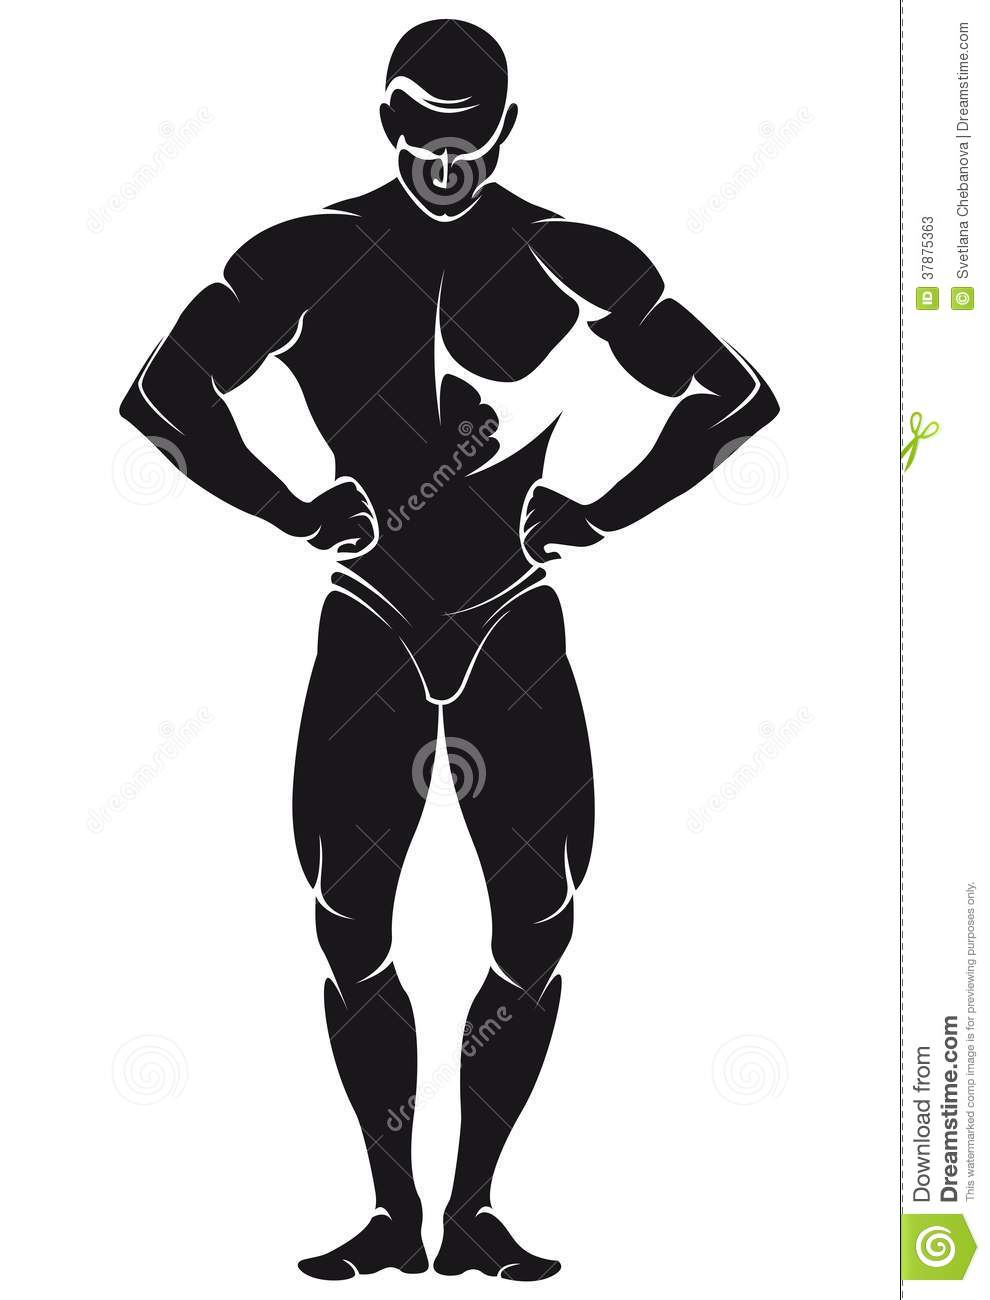 Vector Image With Bodybuilder, Silhouette Stock Photos